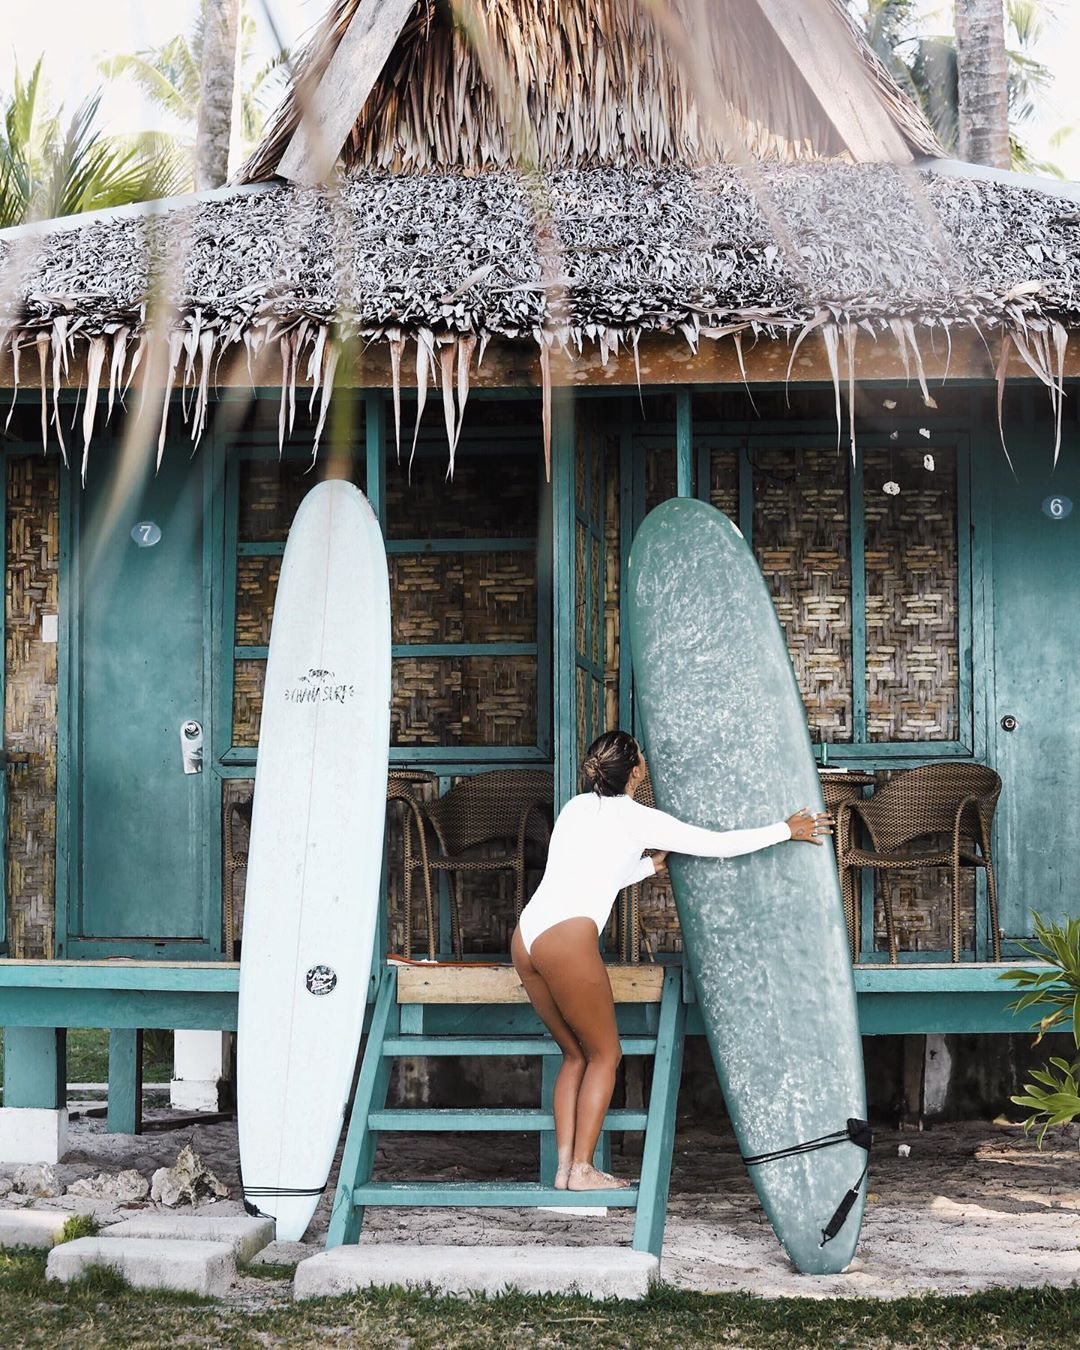 Surfer Girl Mentawais Philippines Tropical Surfing Surfing Pictures Surf Style